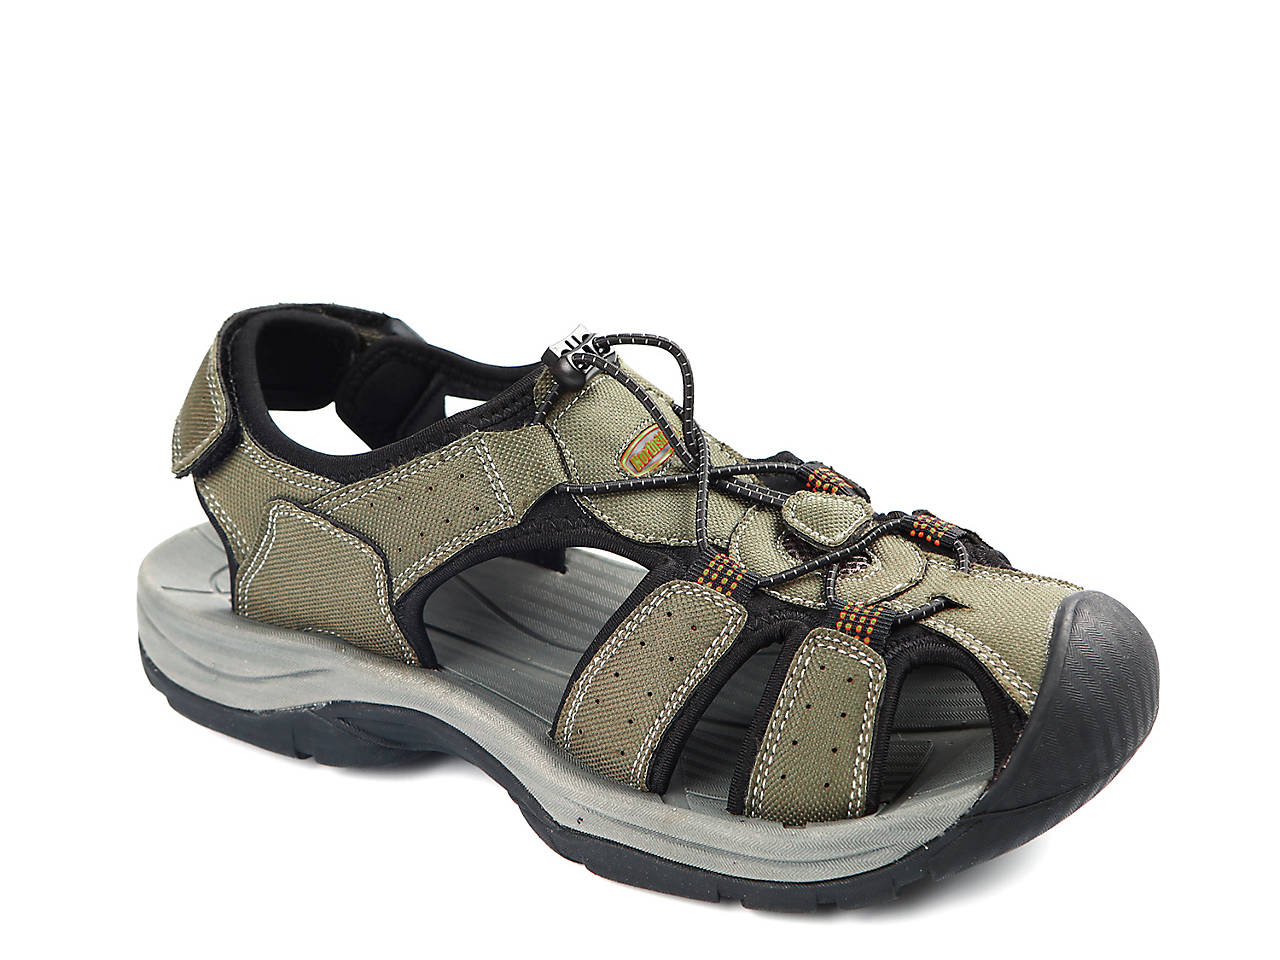 NORTHSIDE Trinidad Sport Leather Sandal GuxzE